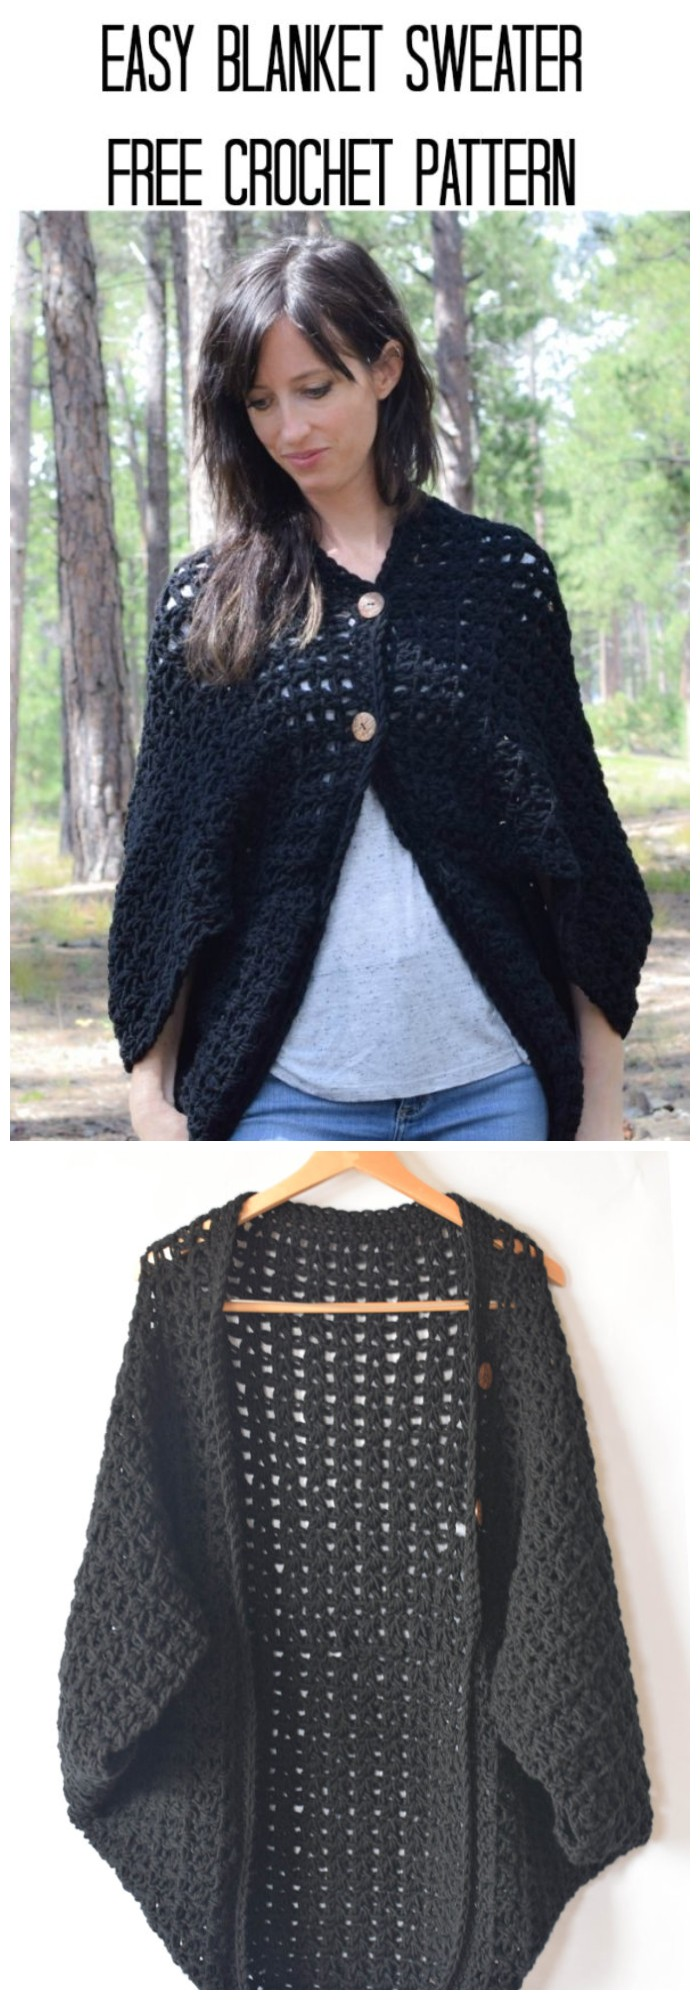 Blanket Sweater Crochet Pattern